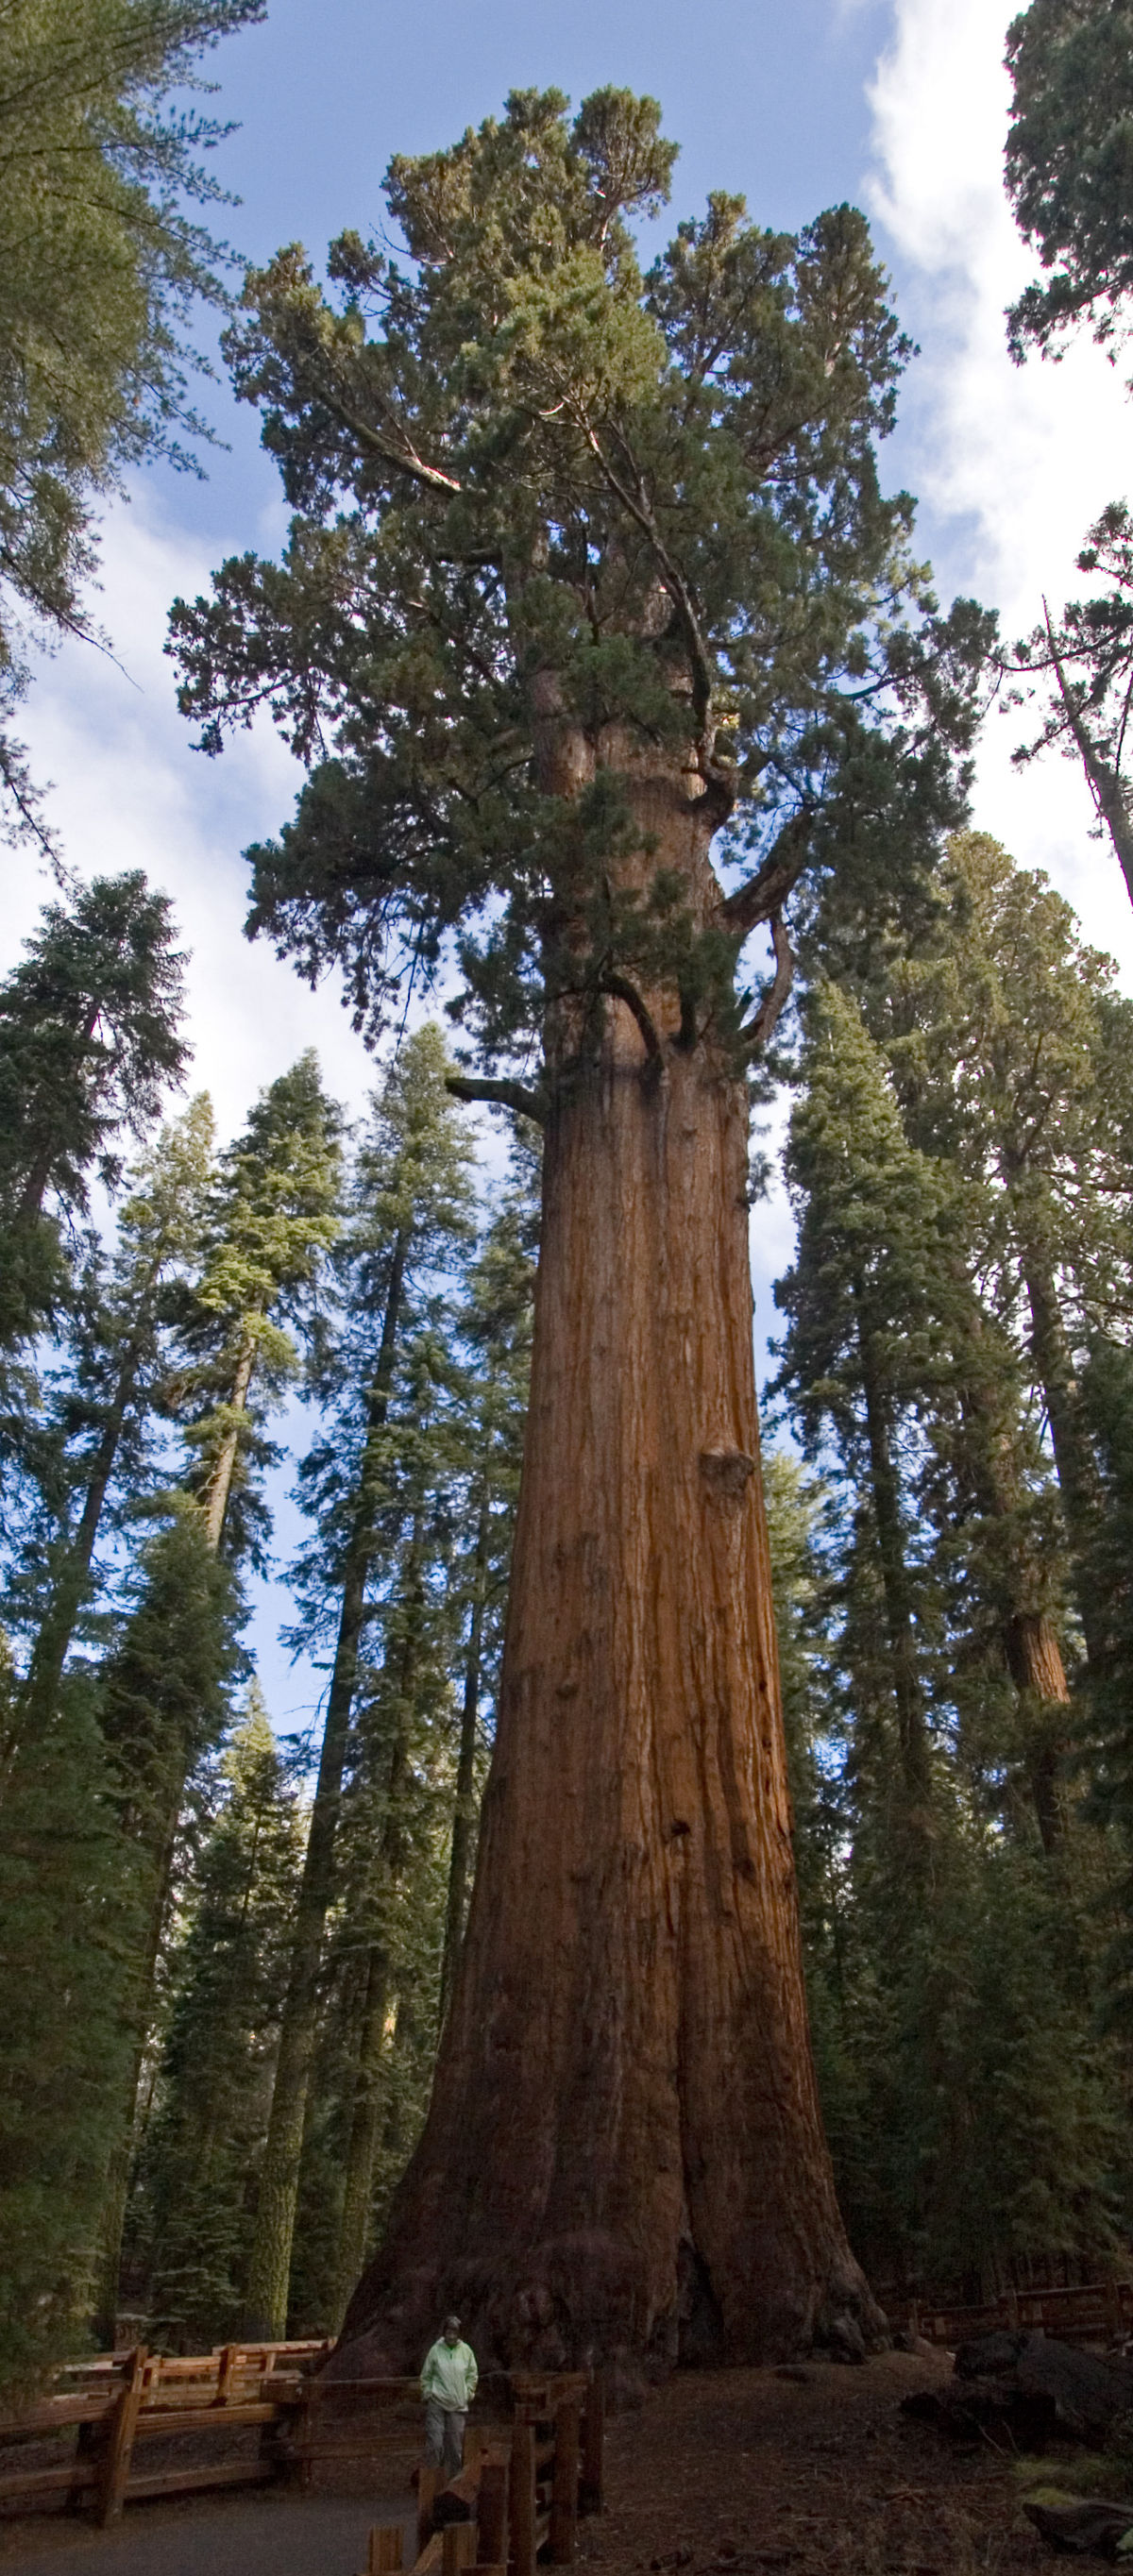 Trees Of Santa Cruz County Nyssa Sylvatica: List Of Largest Giant Sequoias